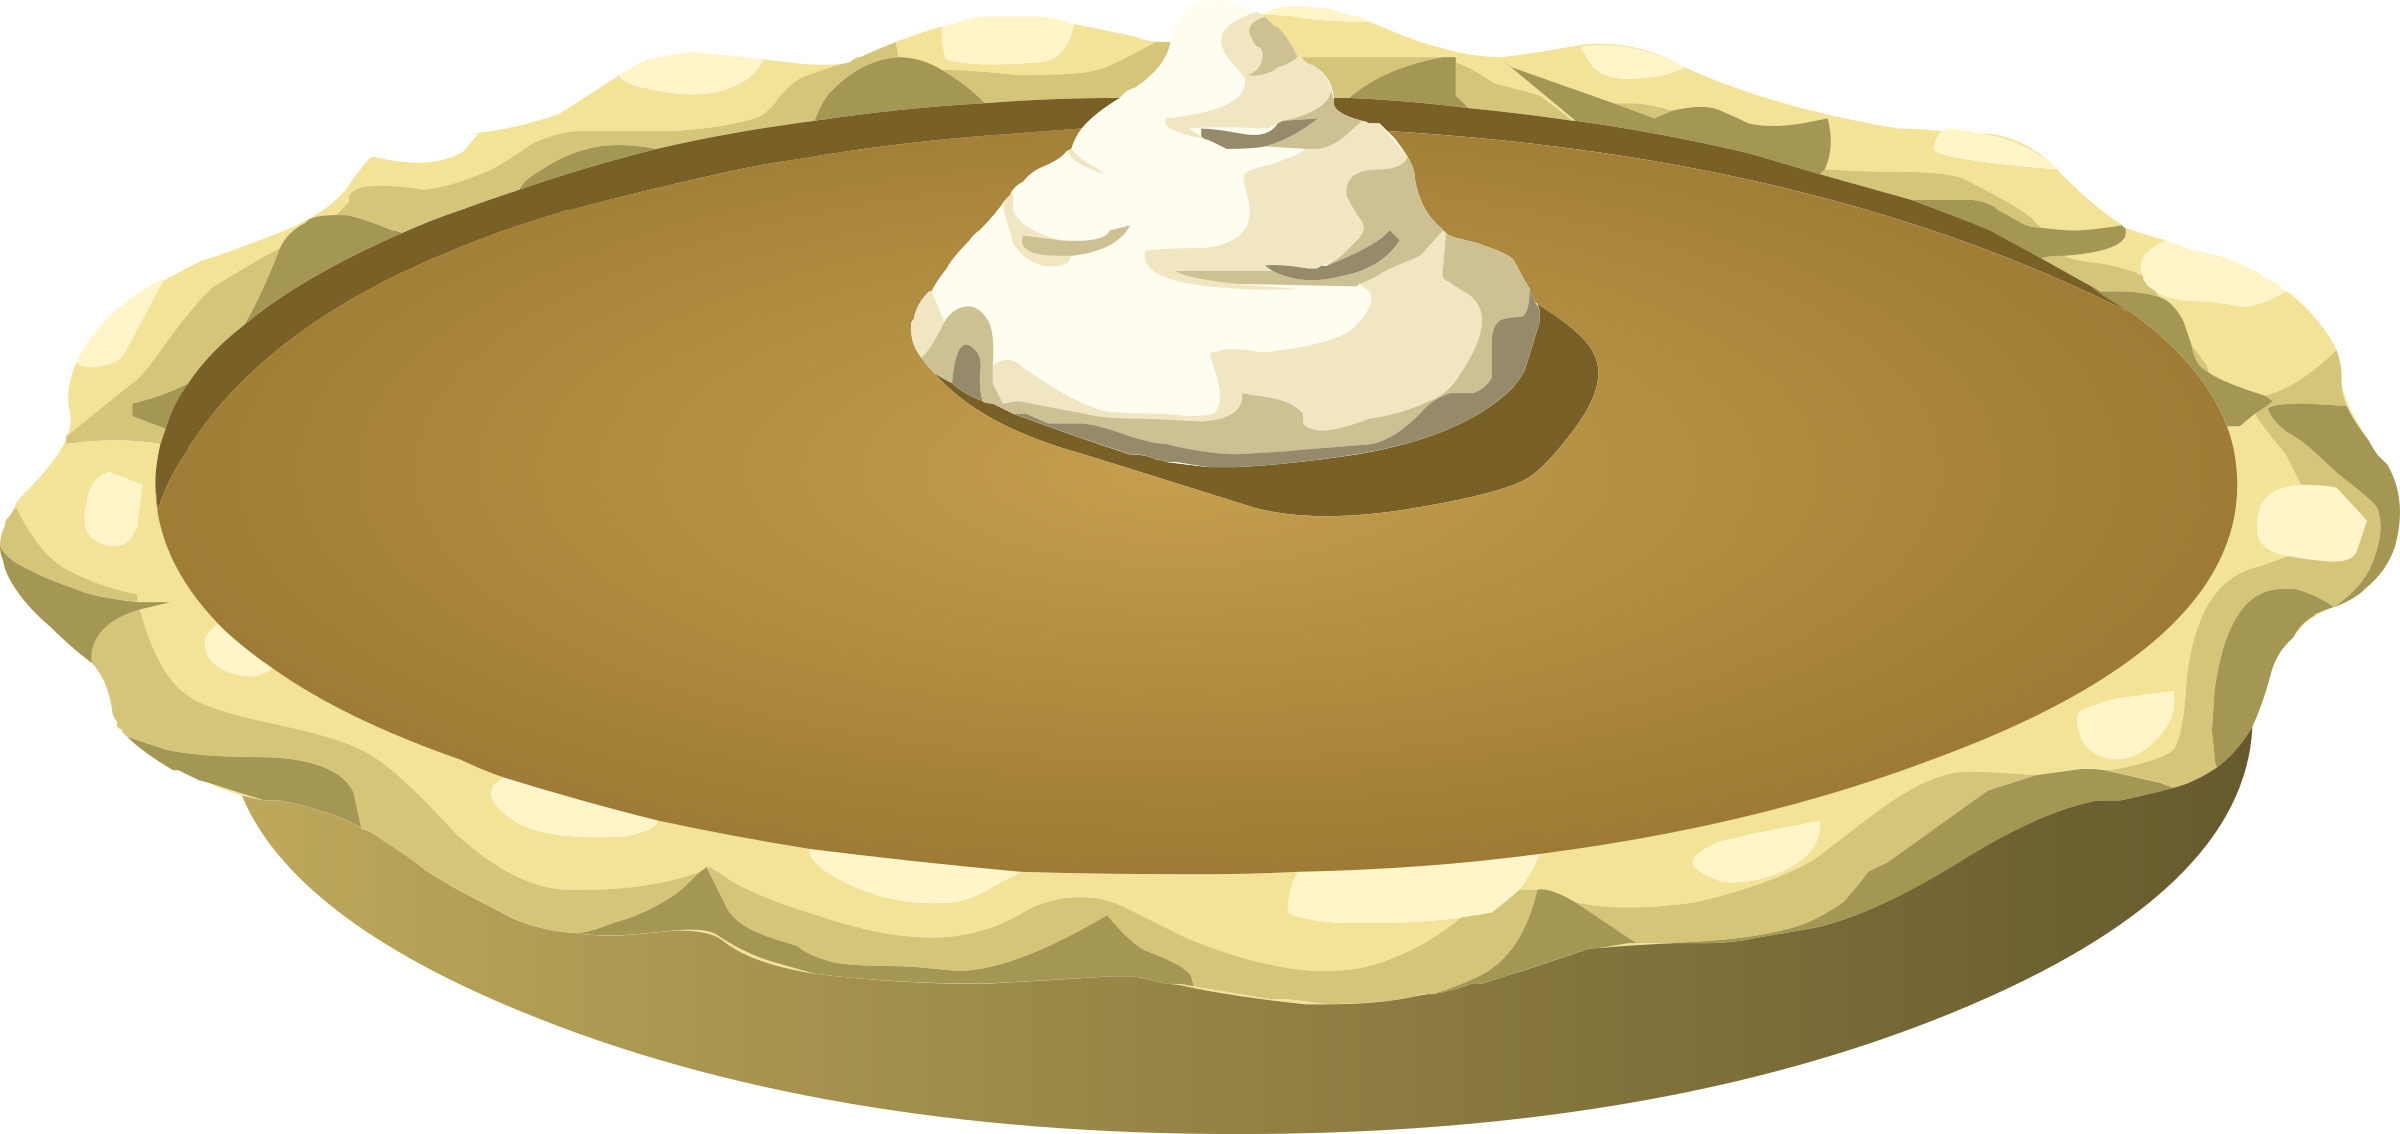 Baking pumpkin pie clipart picture transparent Pumpkin Pie Clipart Png & Pumpkin Pie Clip Art Png Images #4104 ... picture transparent